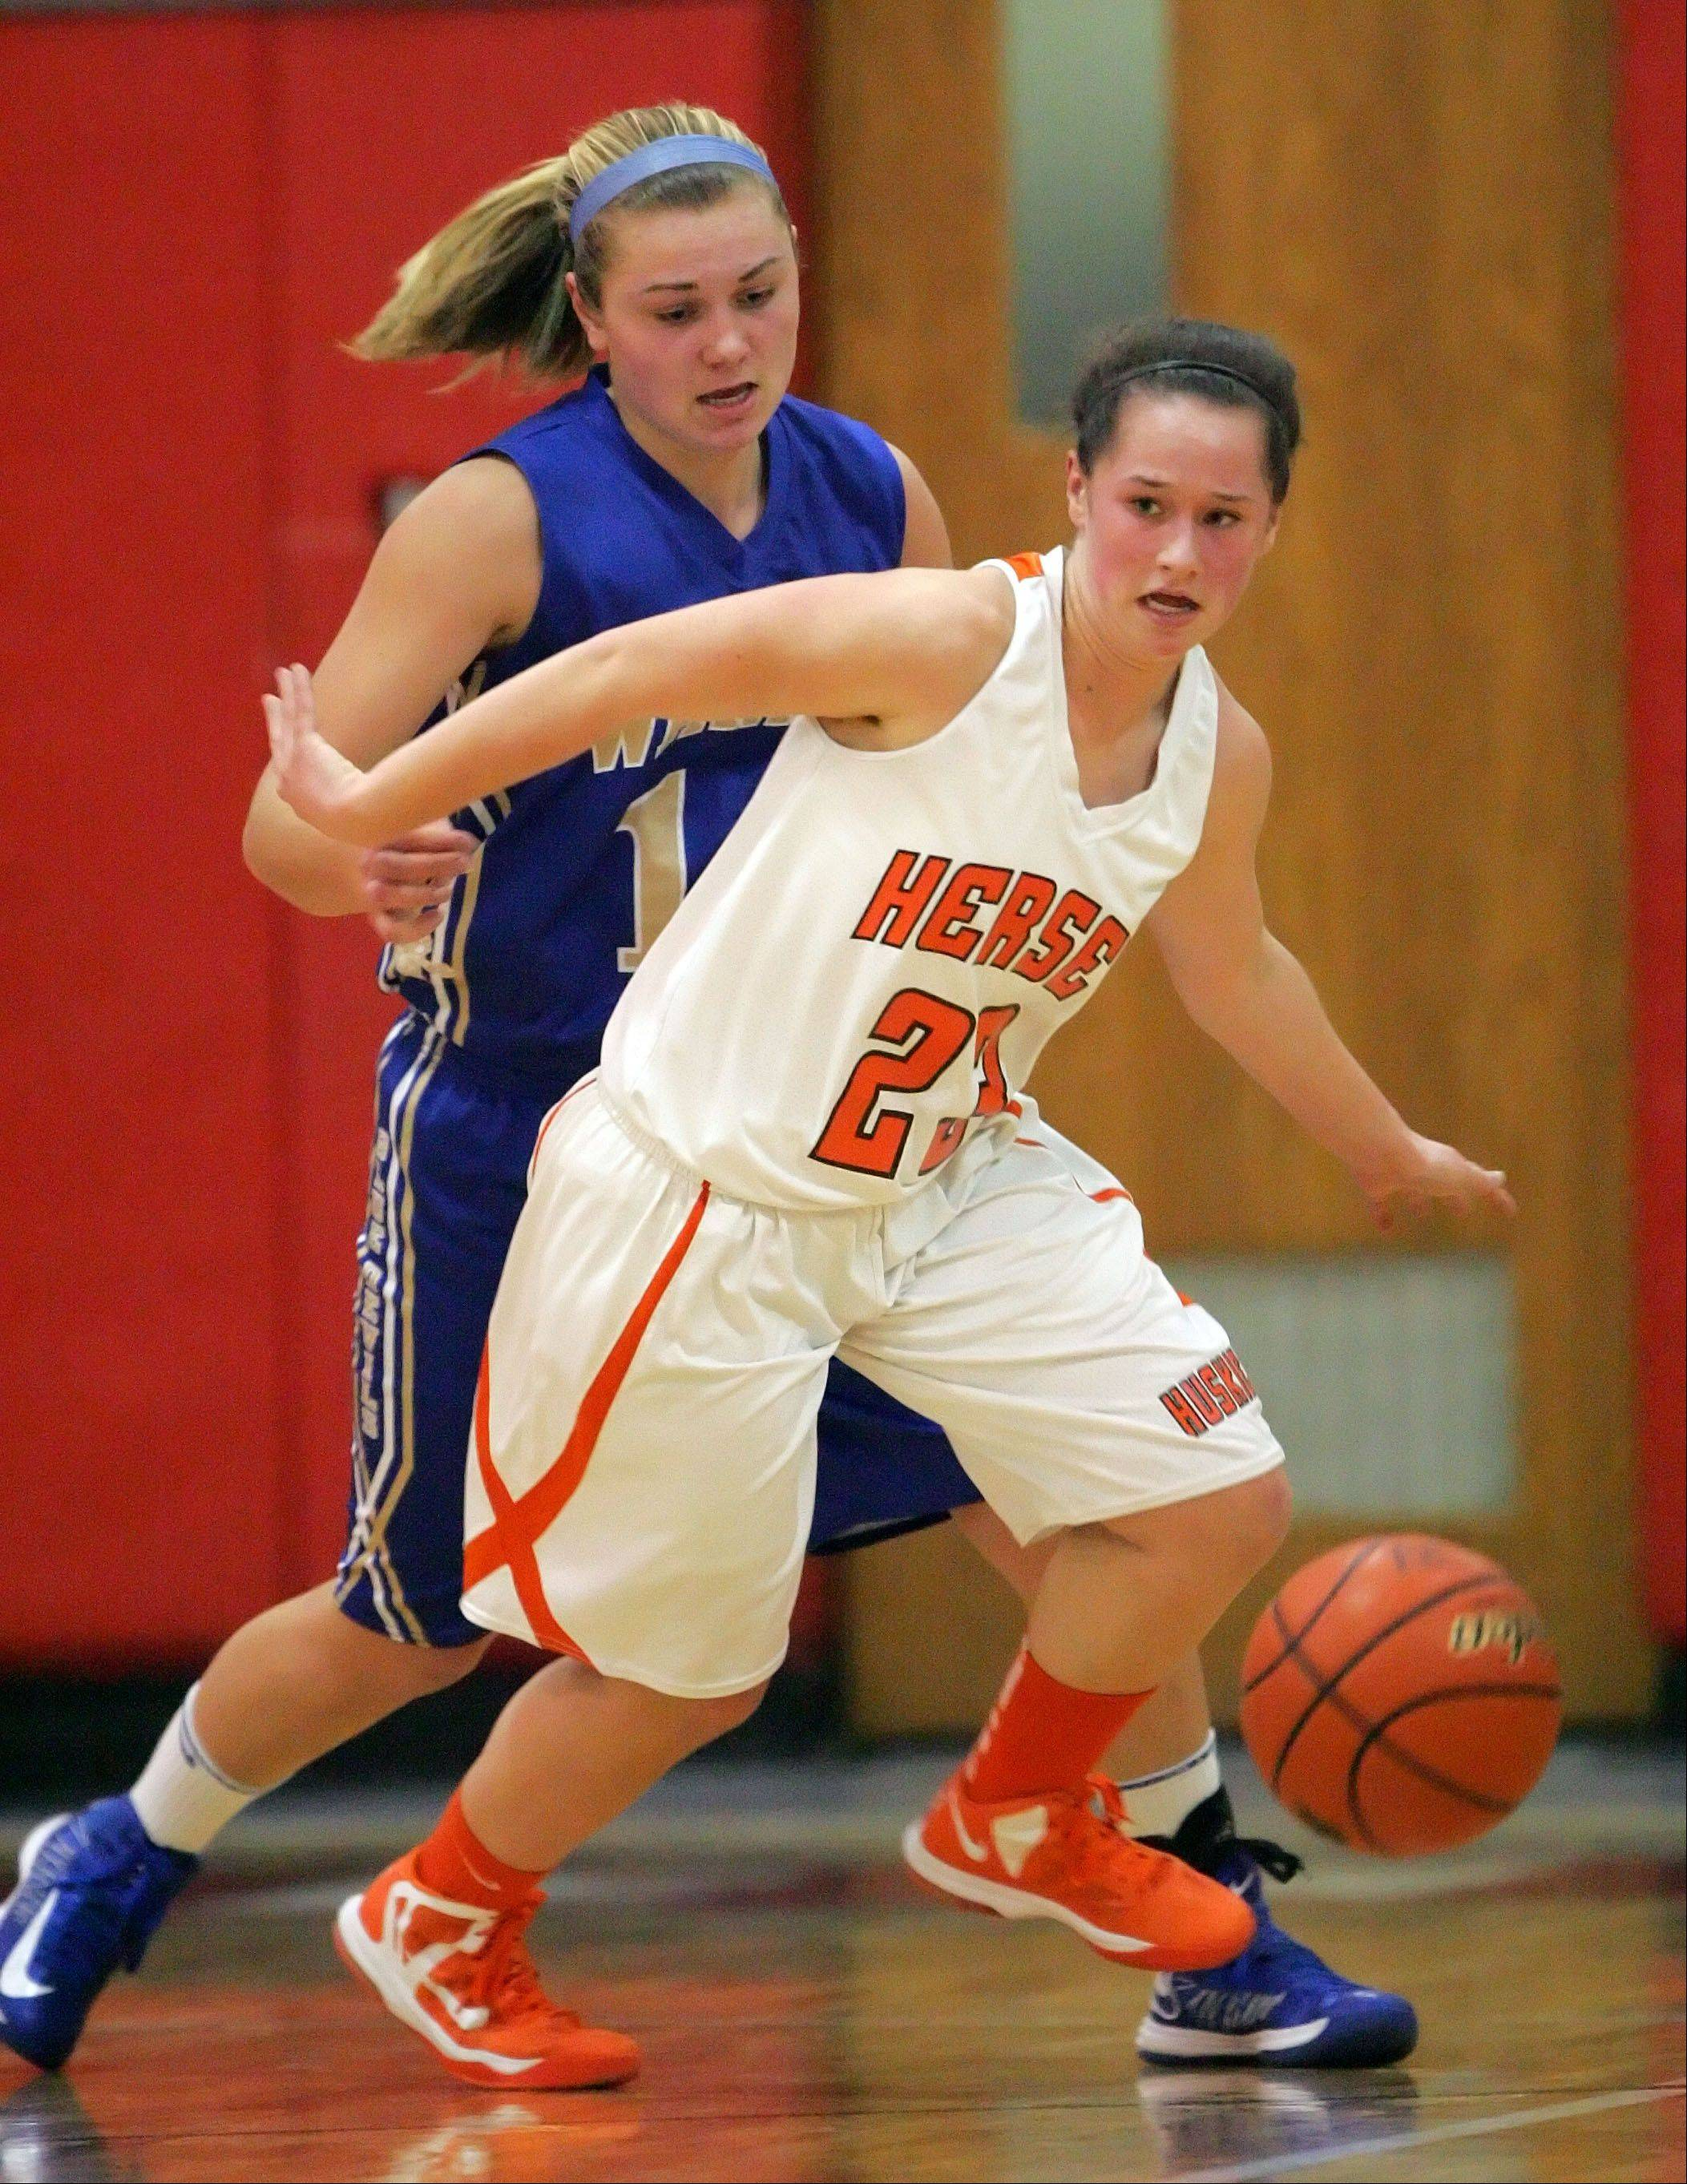 Warren's Kristen O'Brien, left, and Hersey's Casey Weyhrich battle for a loose ball during Class 4A regional semifinal play Tuesday night at Mundelein.